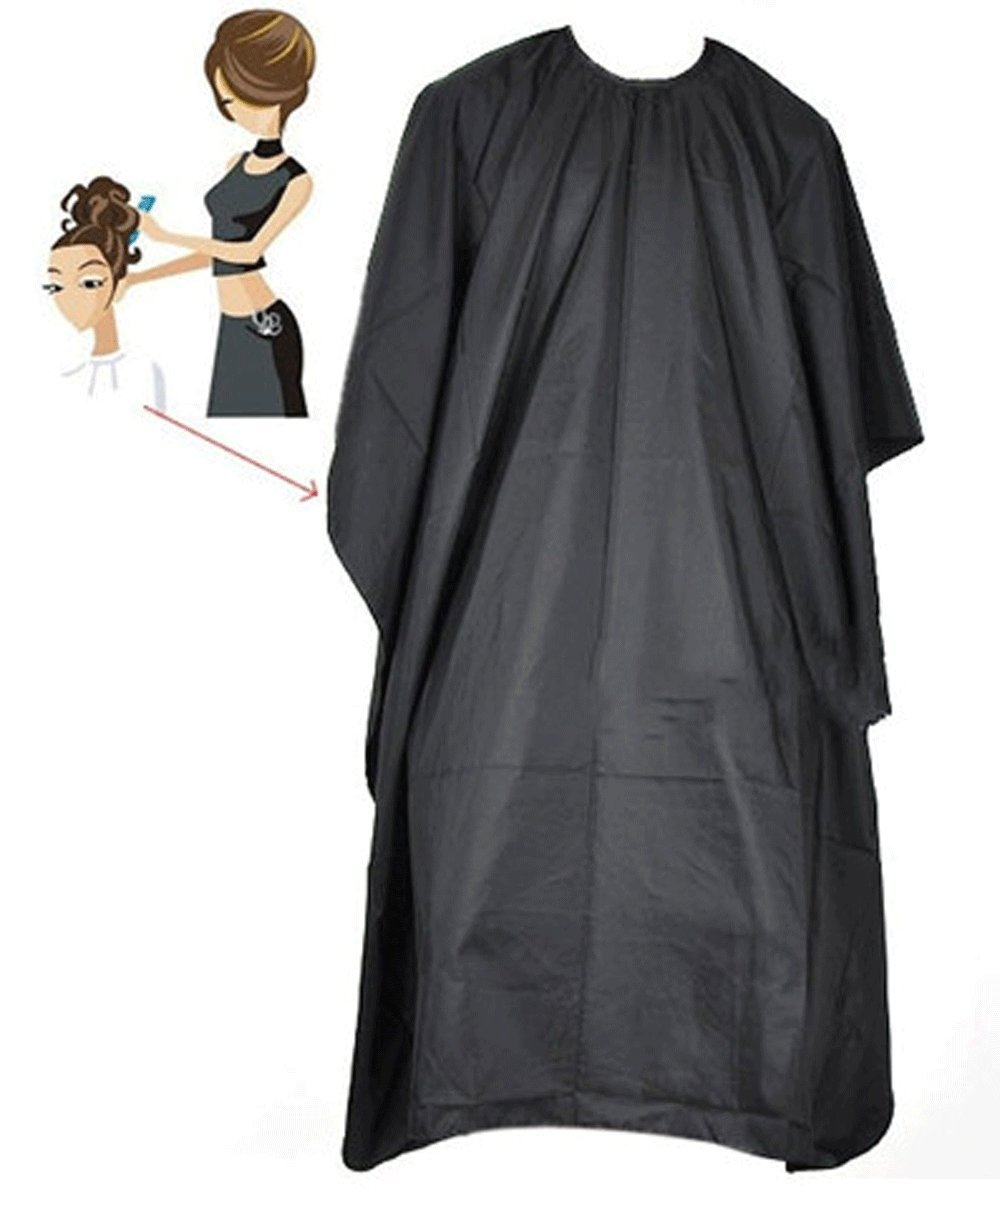 Hair Cutting Cape Pro Salon Hairdressing Hairdresser Gown Barber SOLID BLACK + FREE E - Book